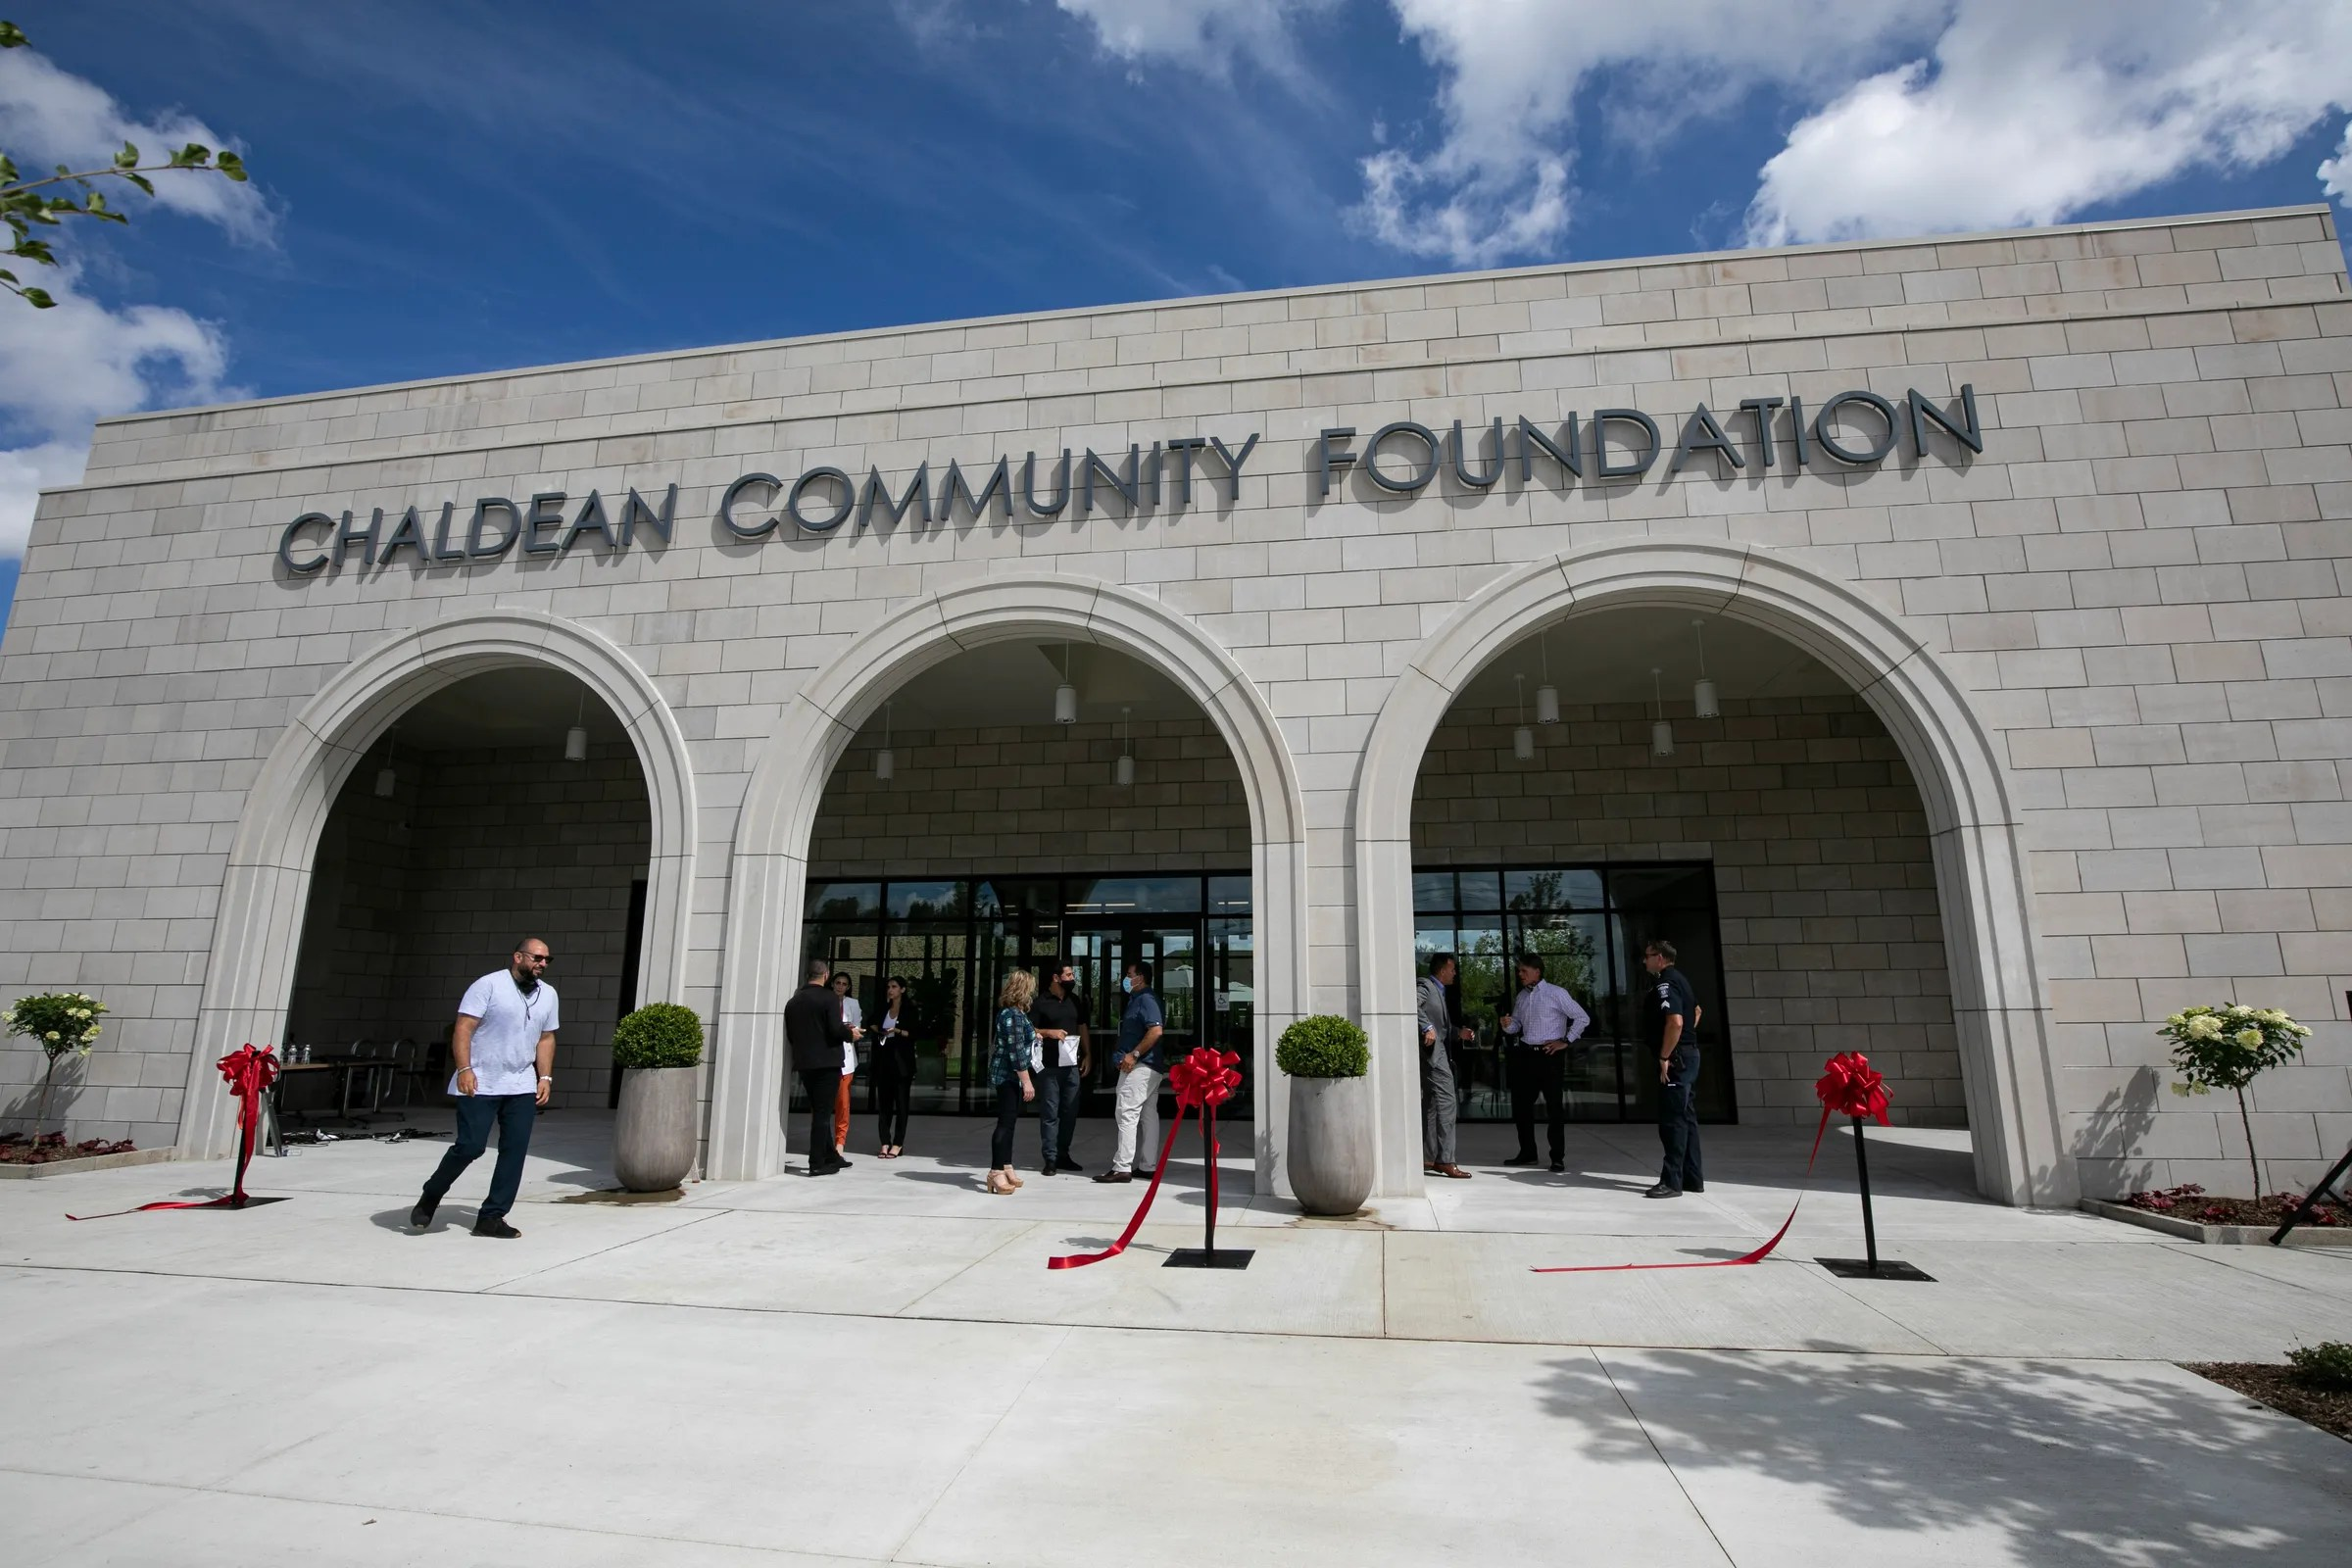 chaldean center expands in sterling